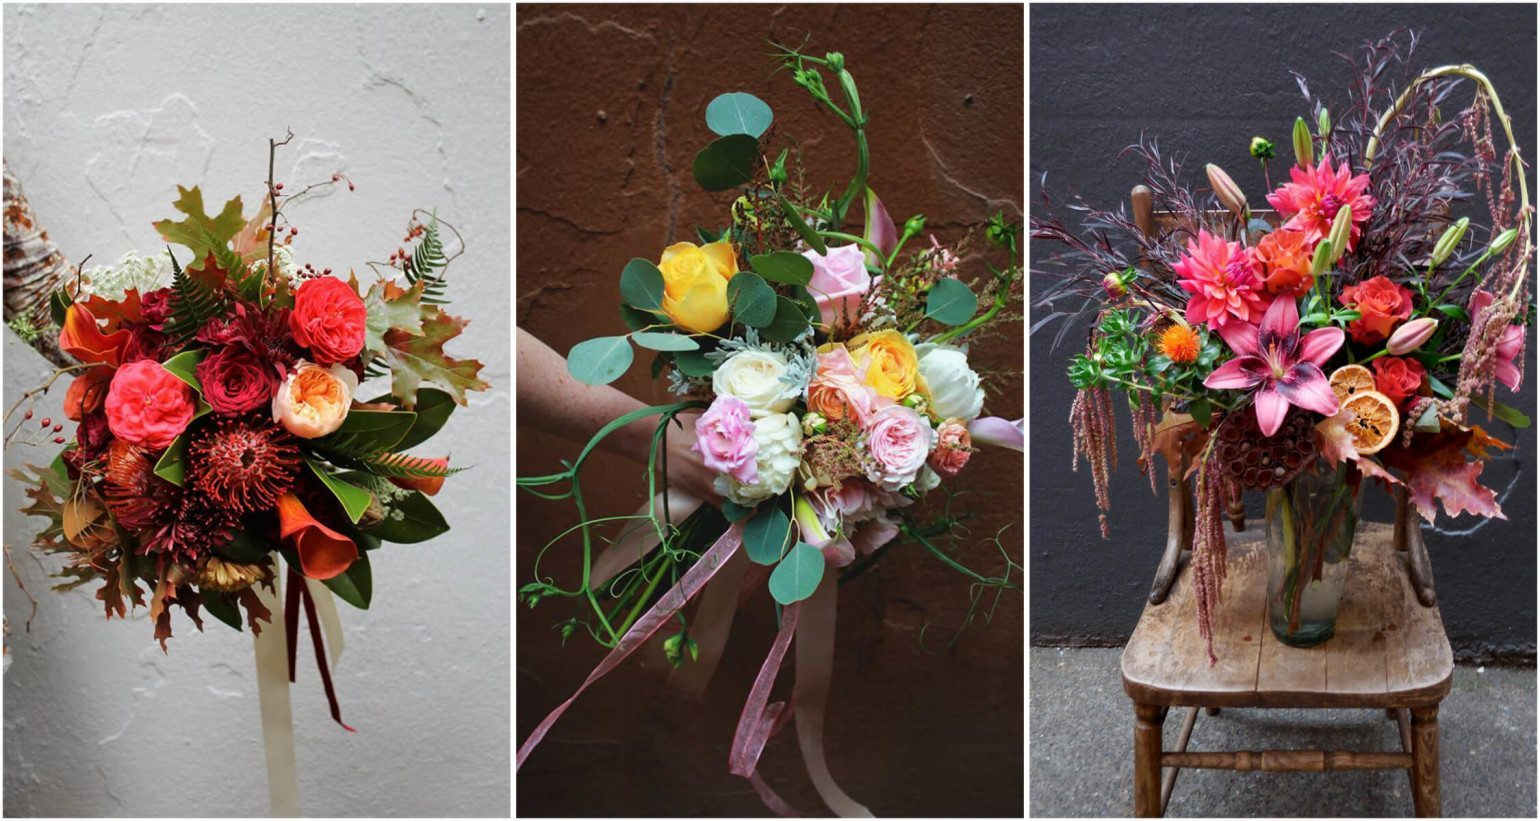 Floral arrangements and wedding bouquets from Passionflower Design in Eugene, Oregon